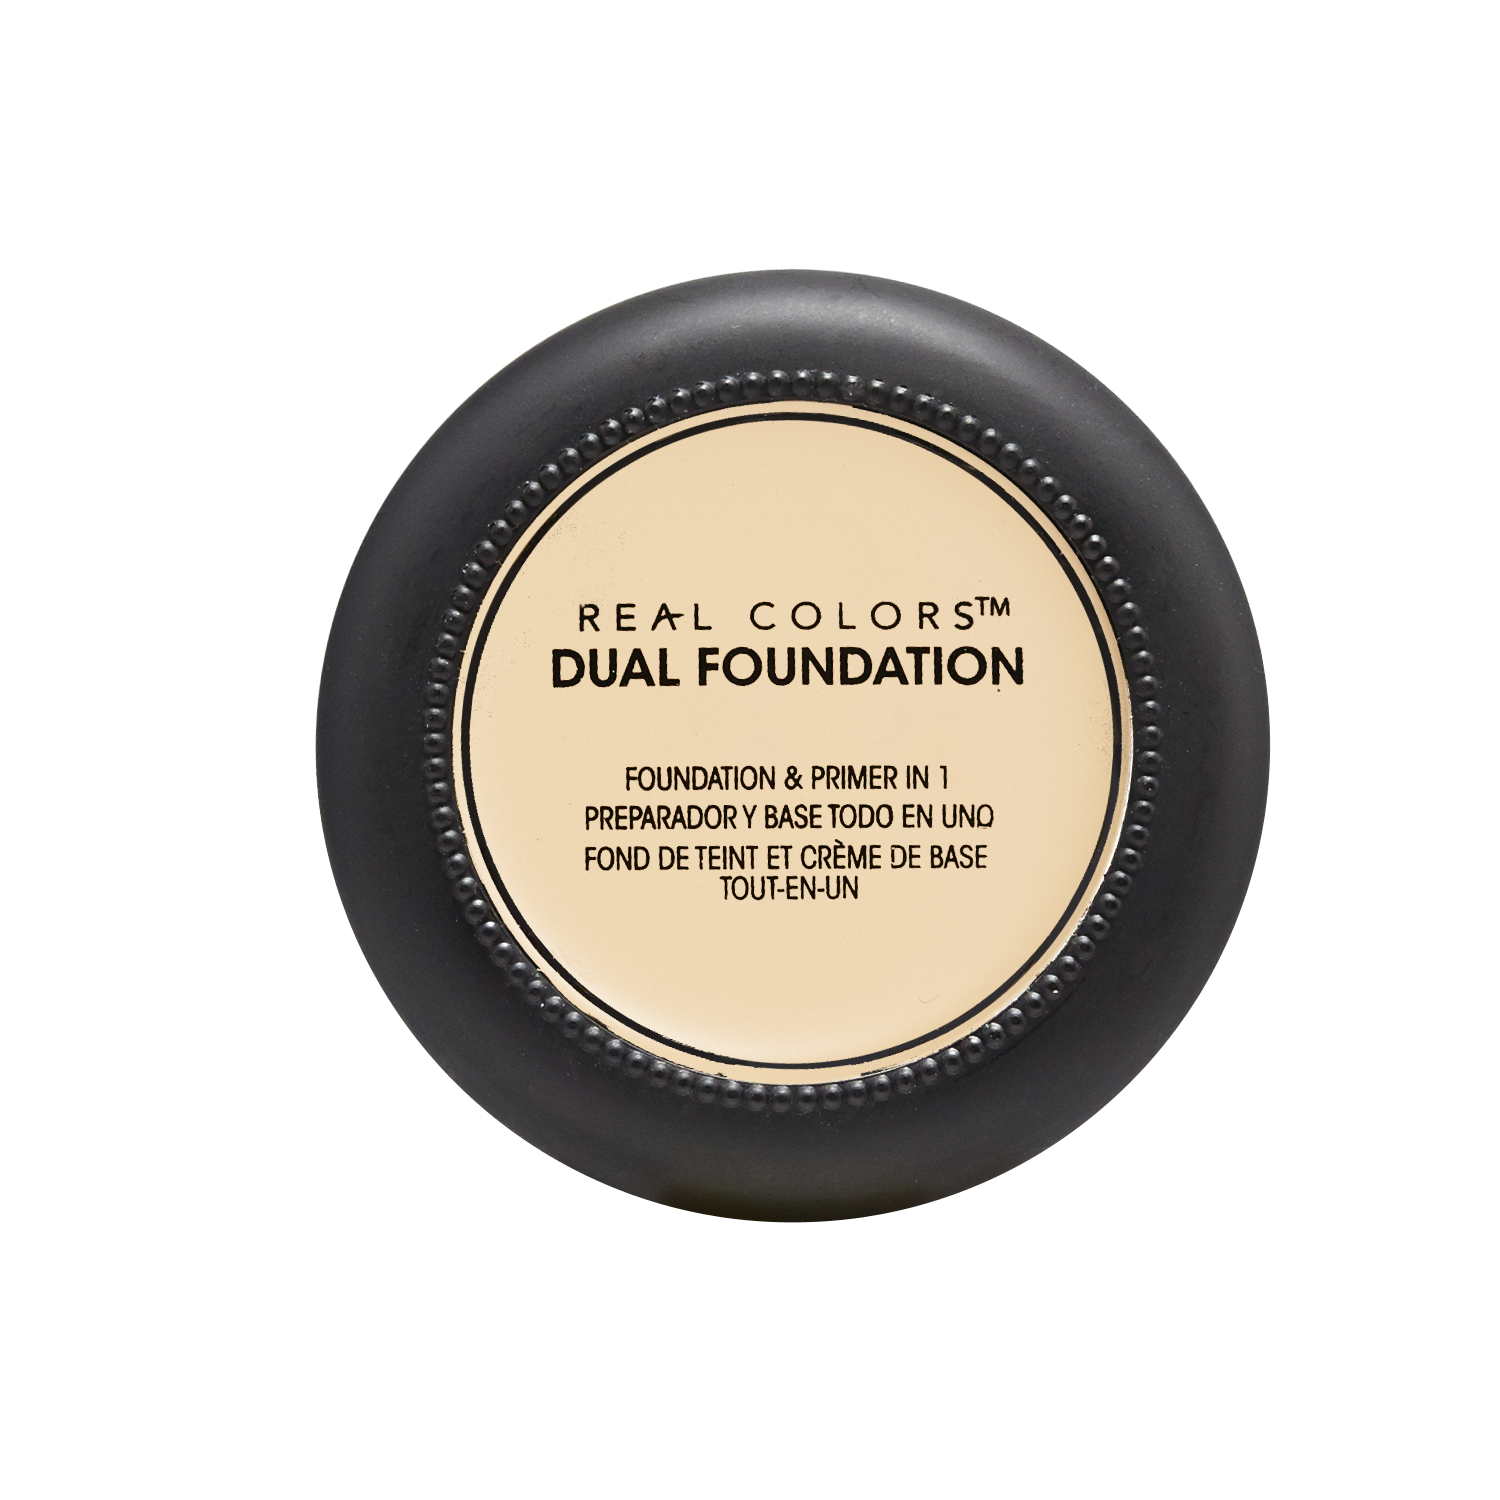 Real Colors Dual Foundation